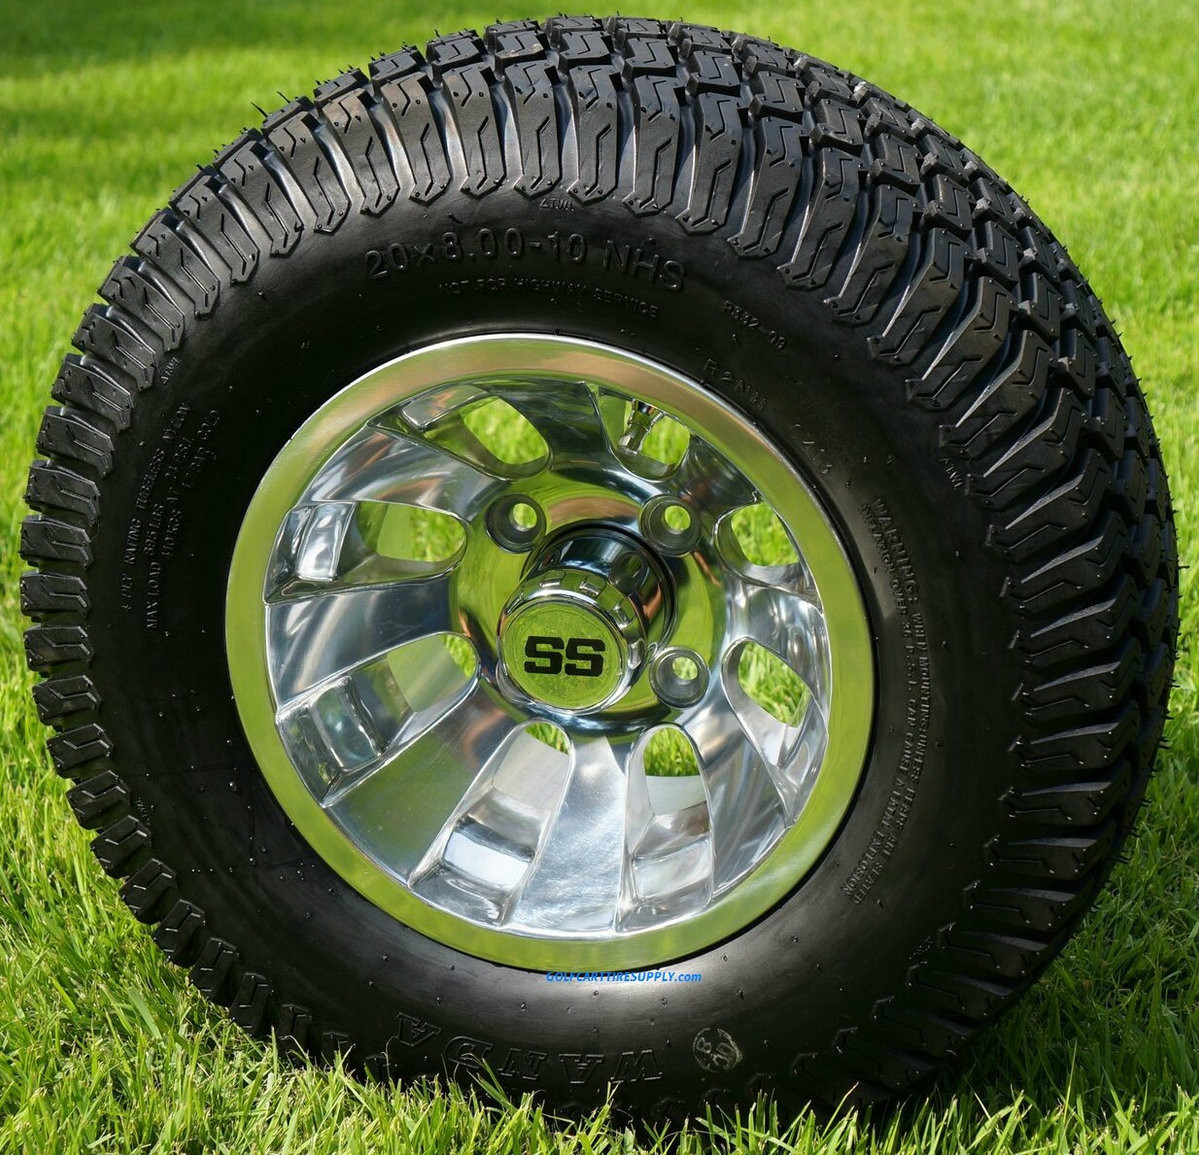 10 Inch Wheels For Golf Cart : Quot silver bullet polished golf cart wheels and